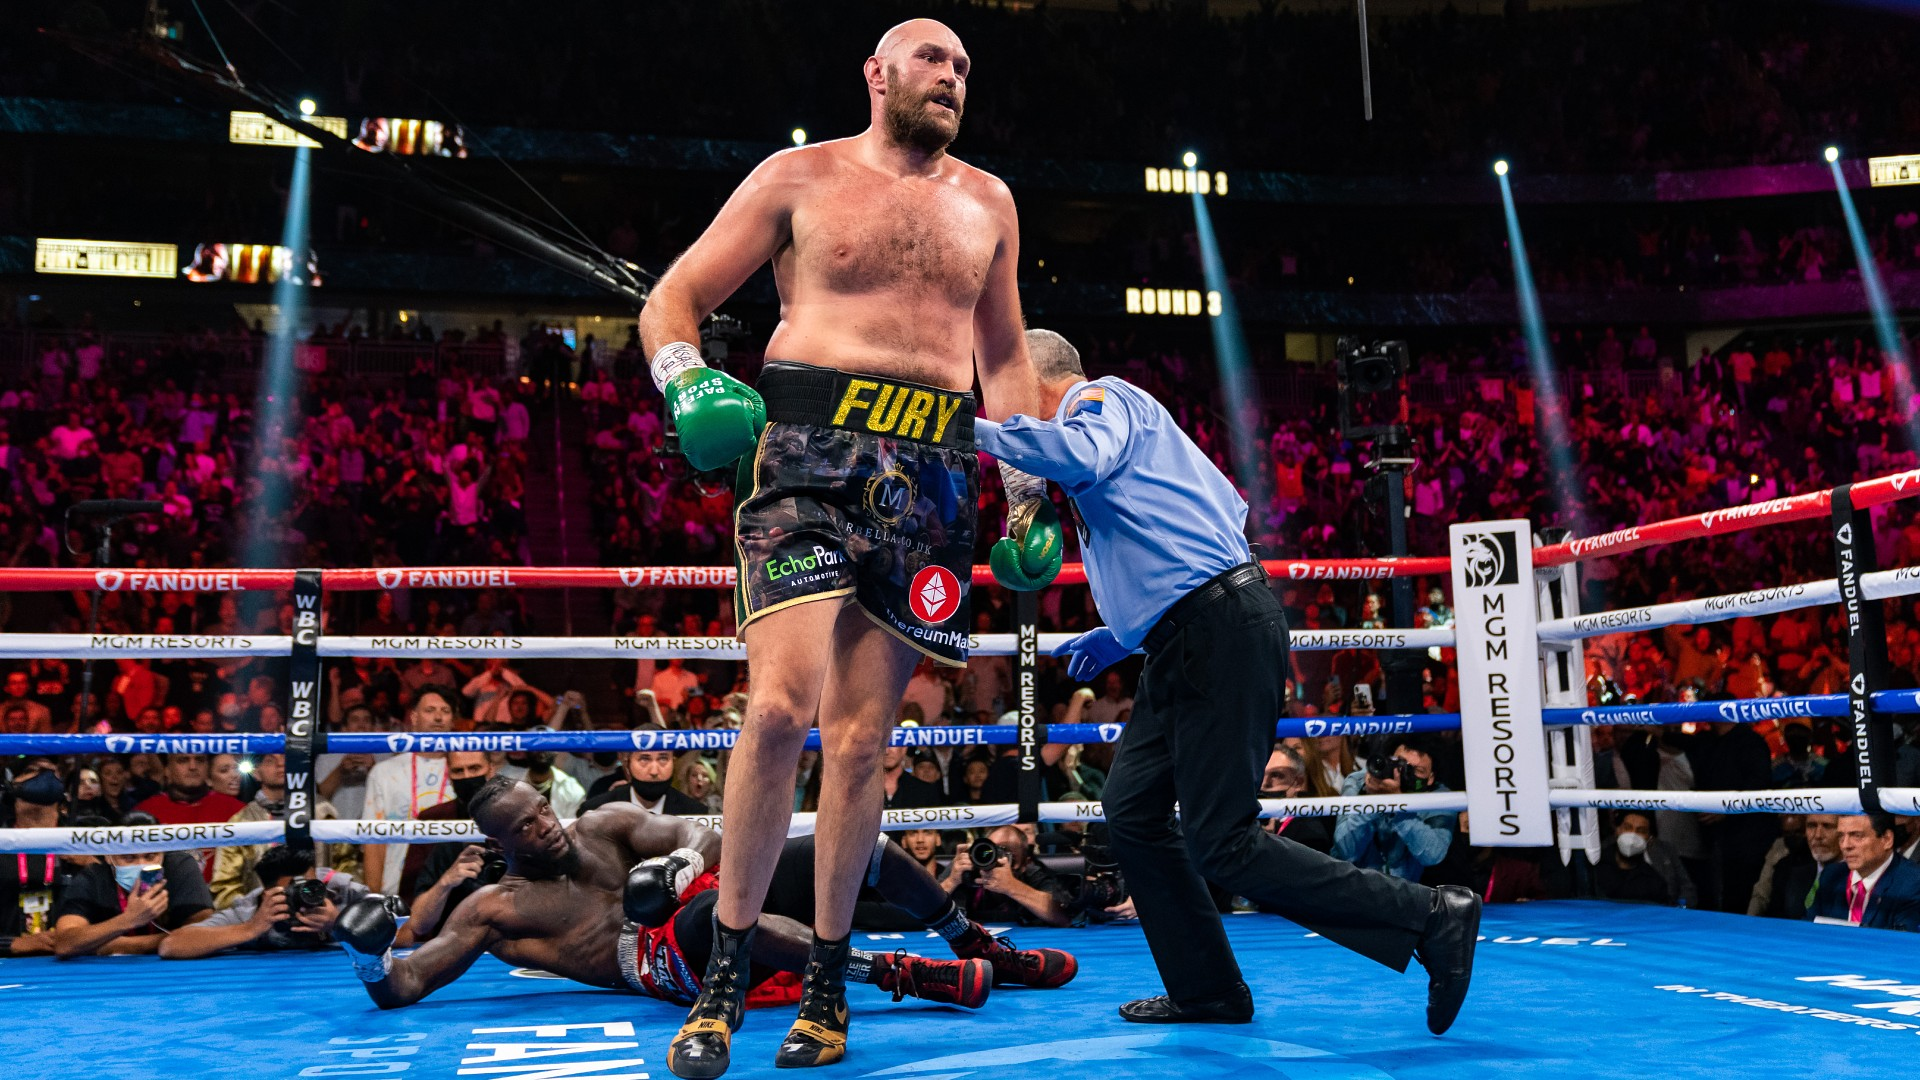 Tyson Fury vs. Deontay Wilder 3 results: Fury outlasts Wilder in epic fight of the year to retain WBC heavyweight title   Sporting News